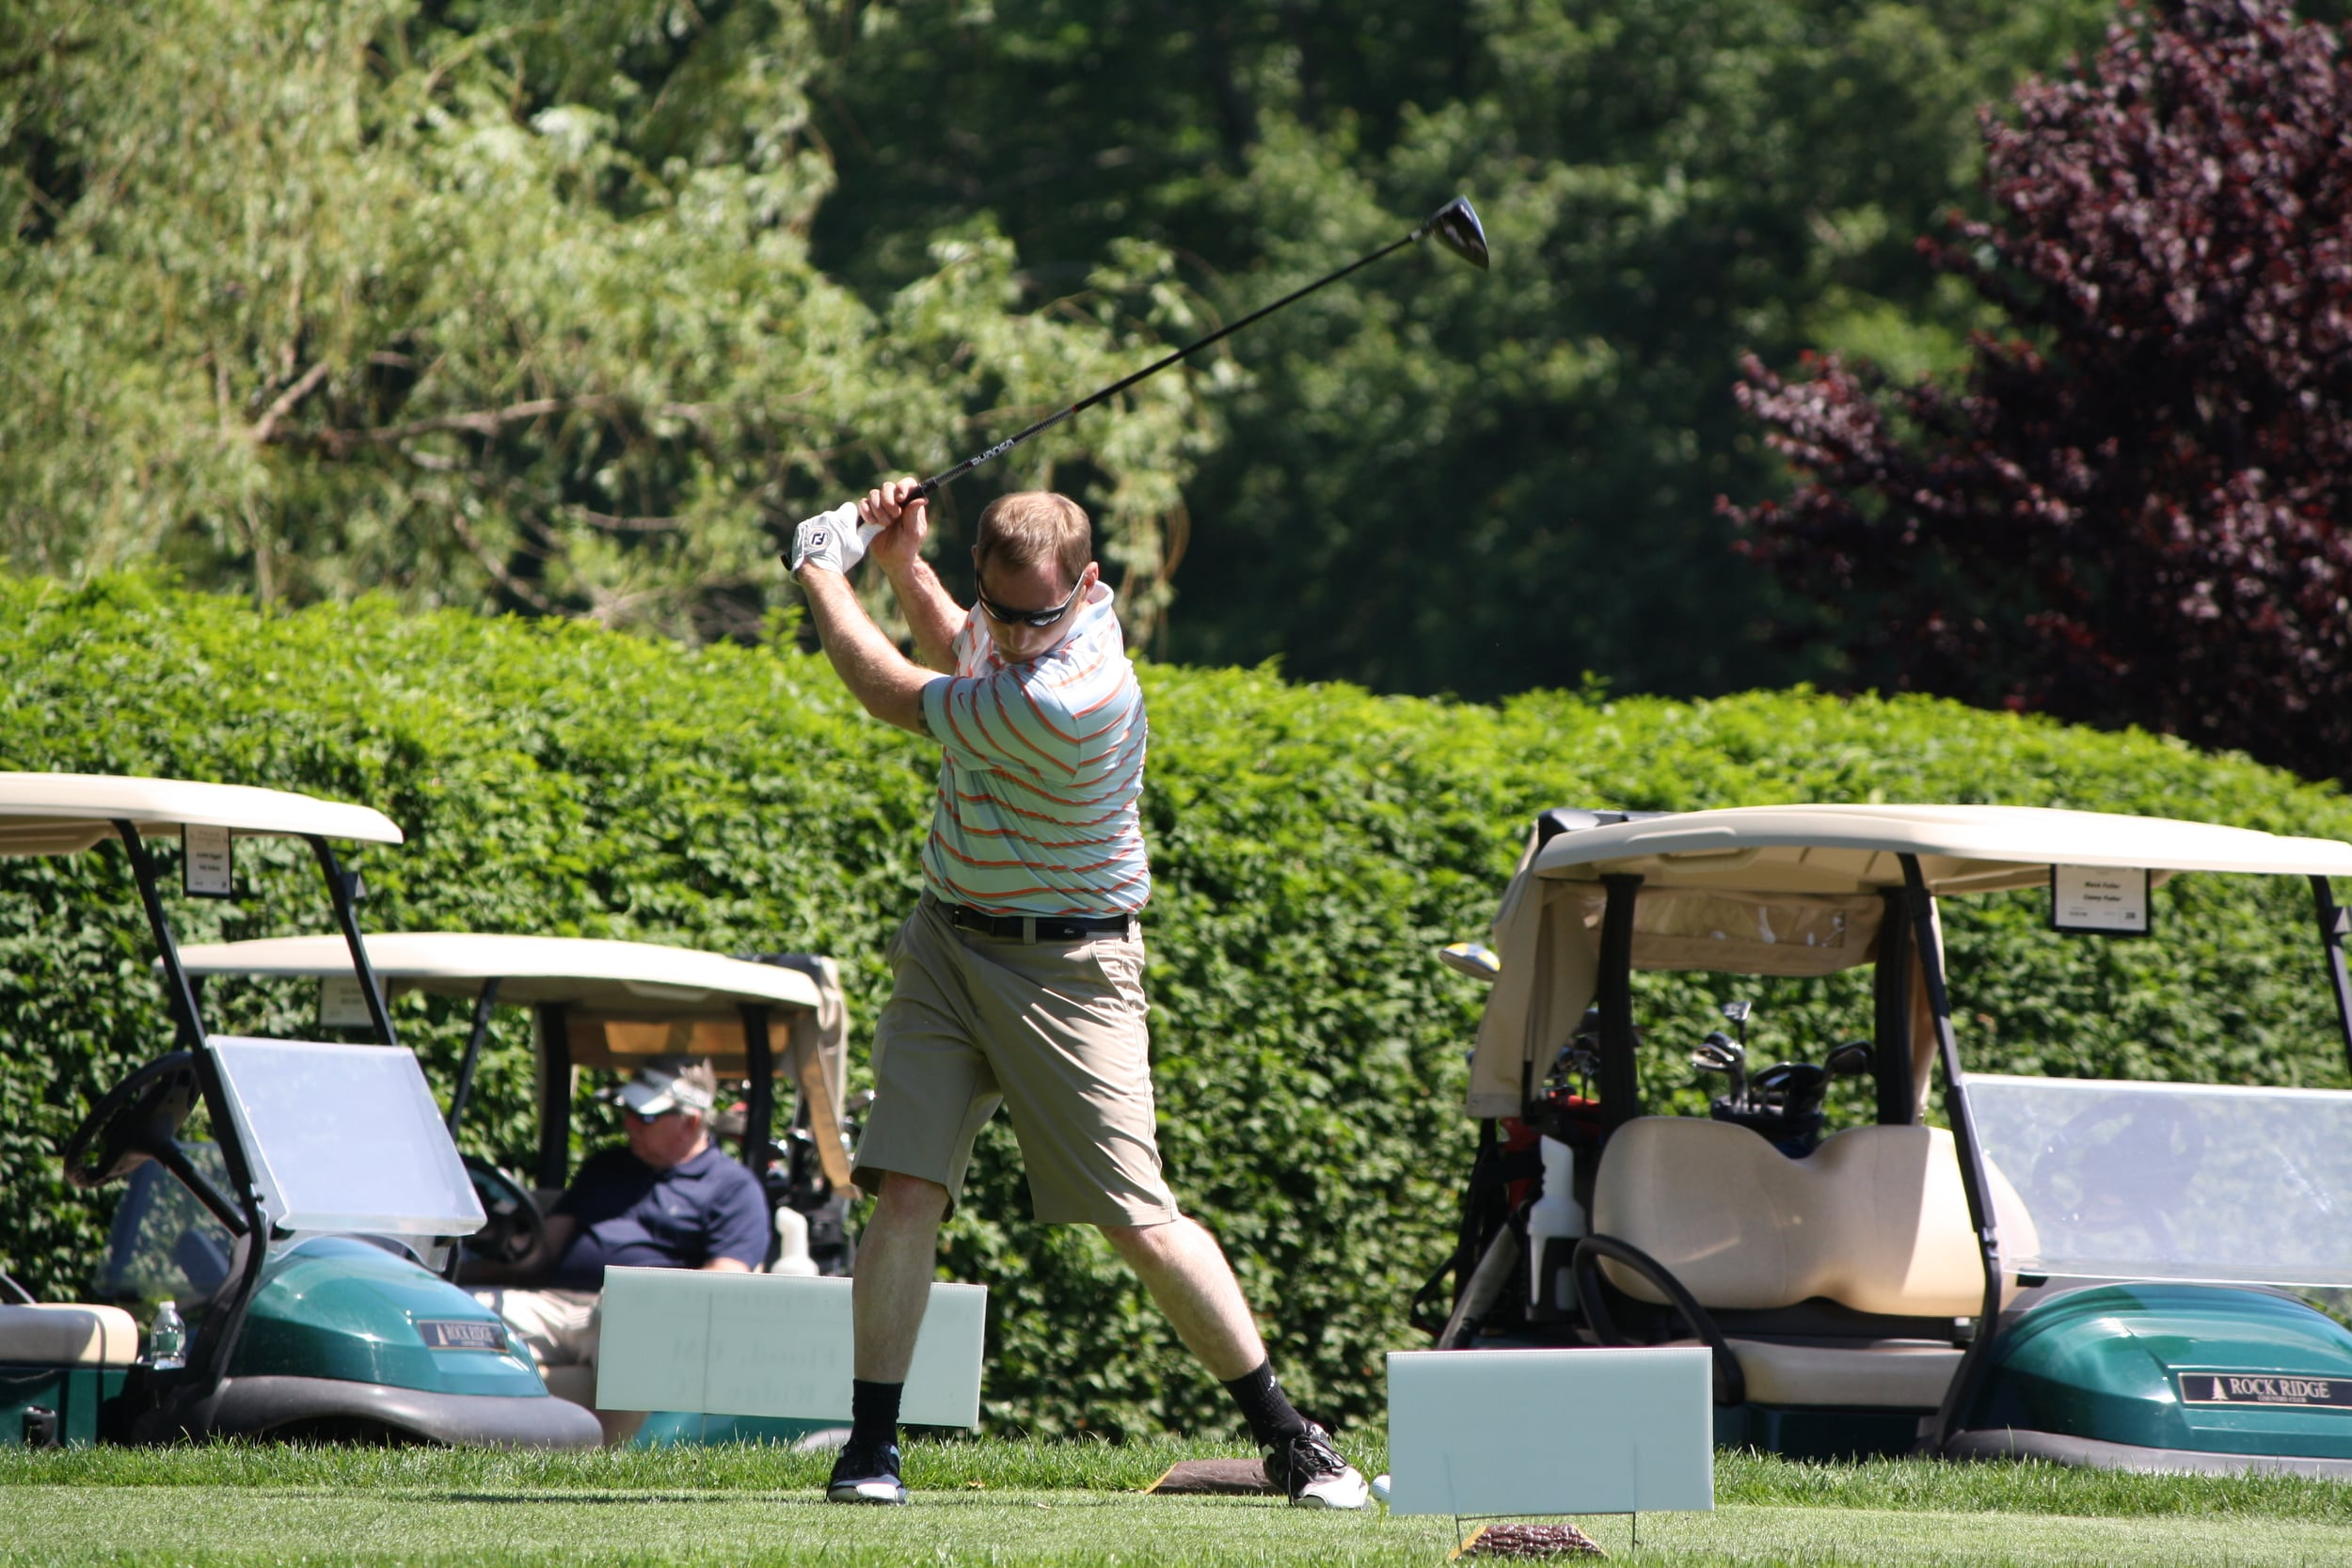 061614 rrcc golf Andy Ouillette 5388.JPG